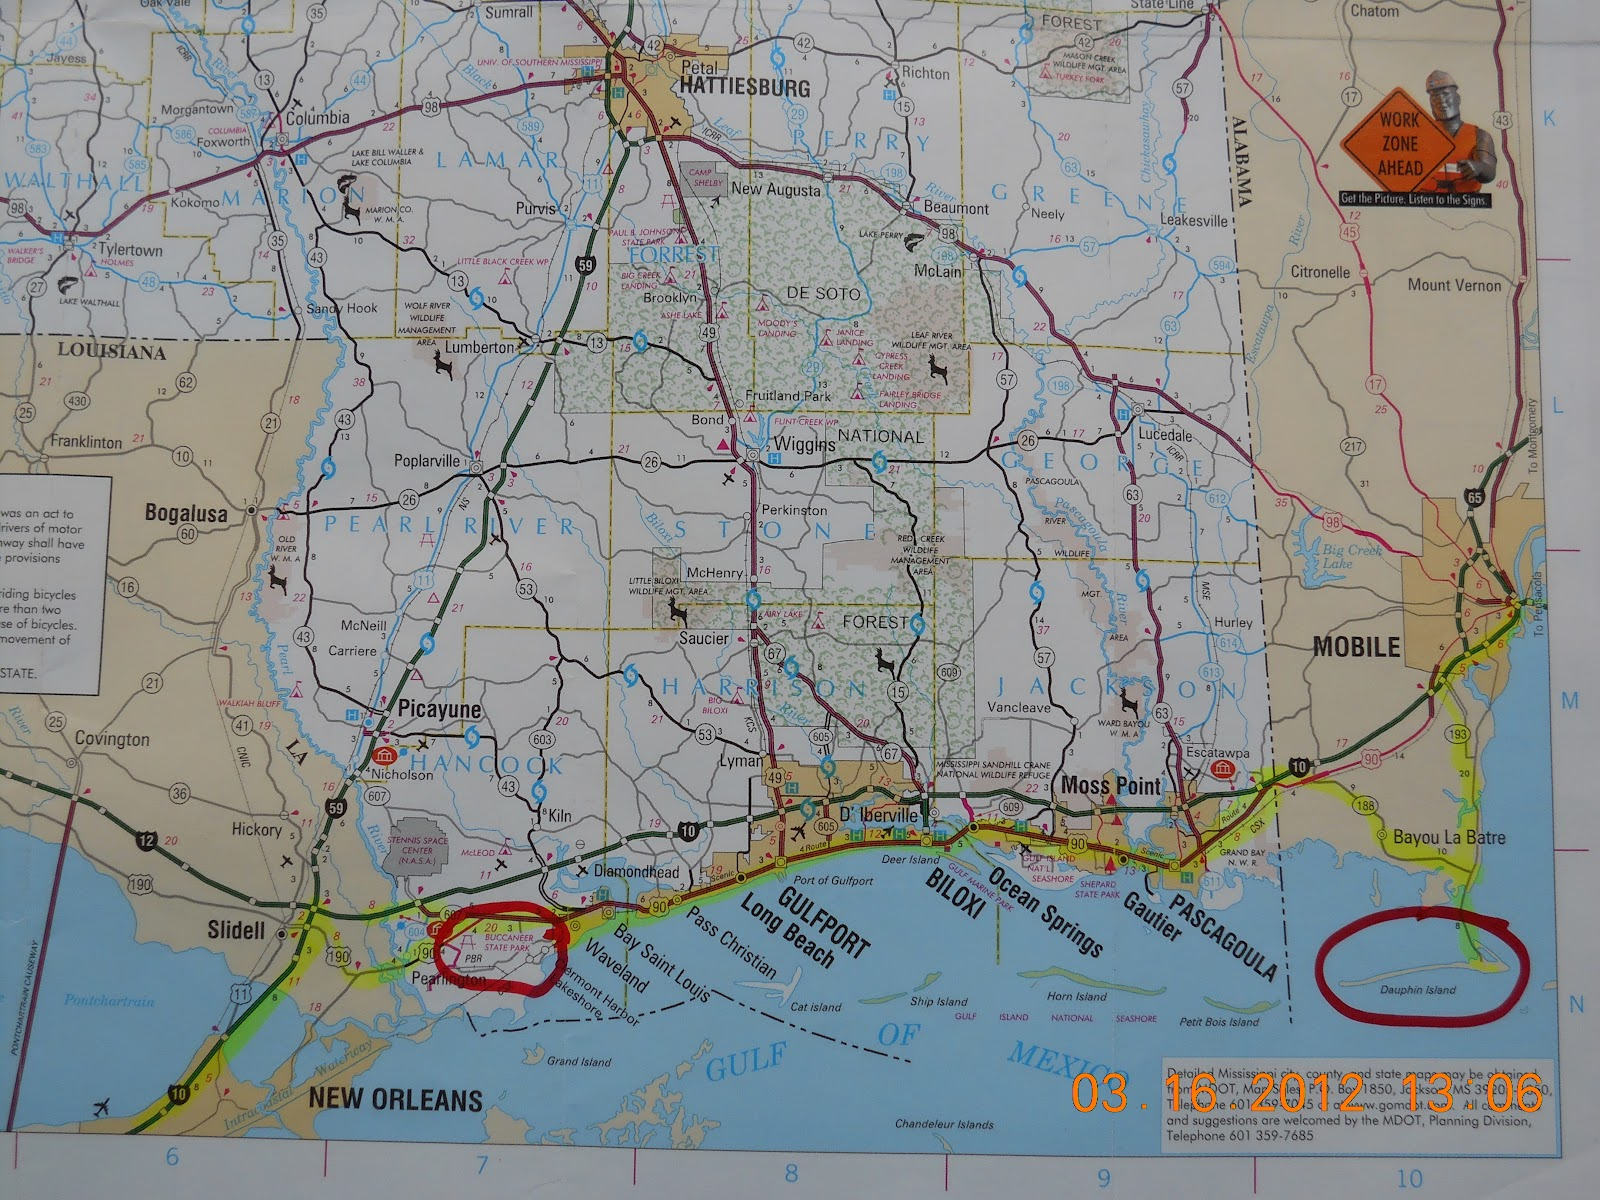 in case you have not figured it out yet i know always provide a legend with a map the yellow line is our route and the circles are where we have stayed